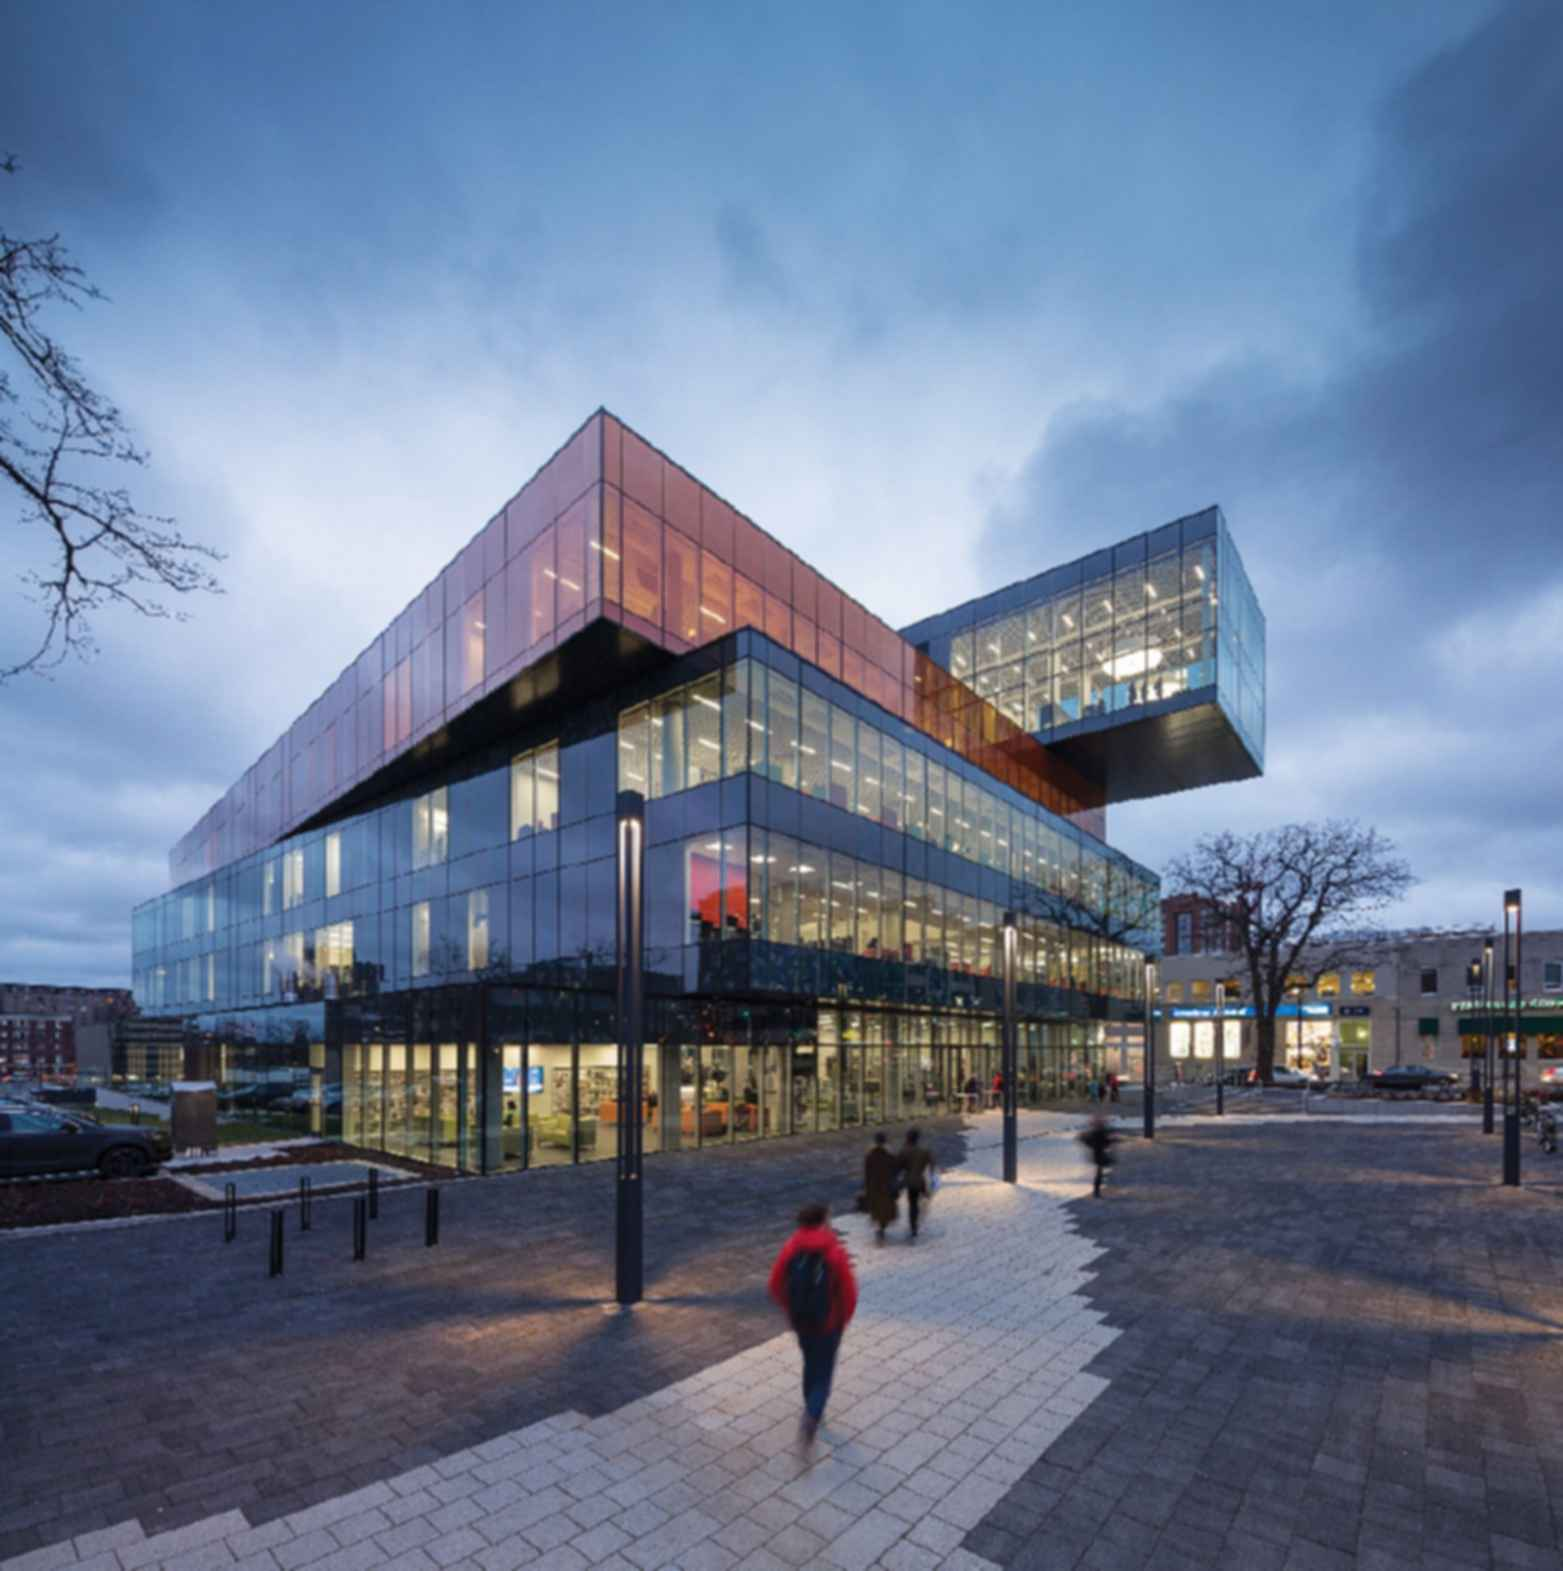 New Halifax Central Library - Exterior